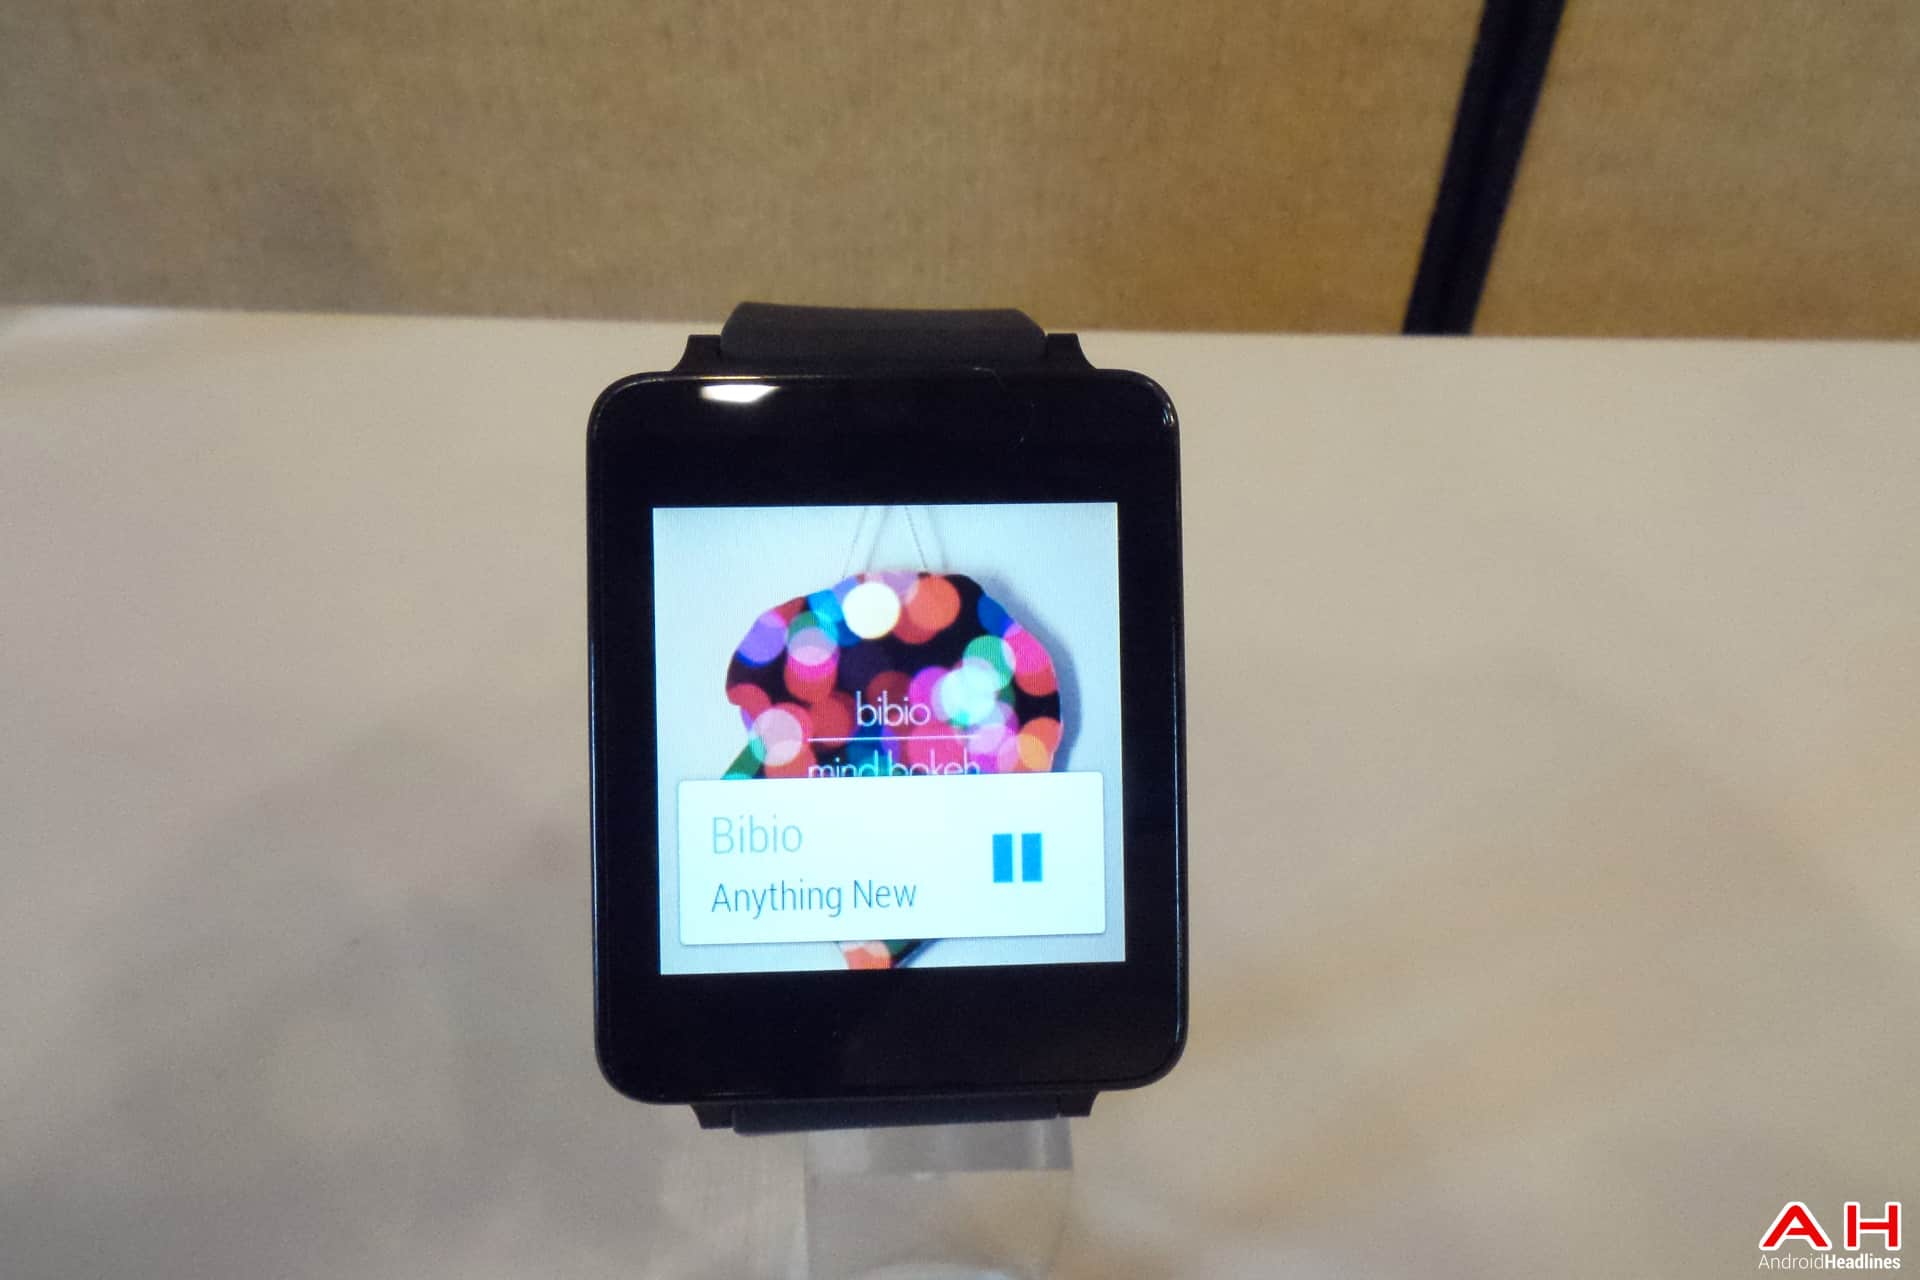 AH Google IO 2014 LG G Watch (2 of 10)